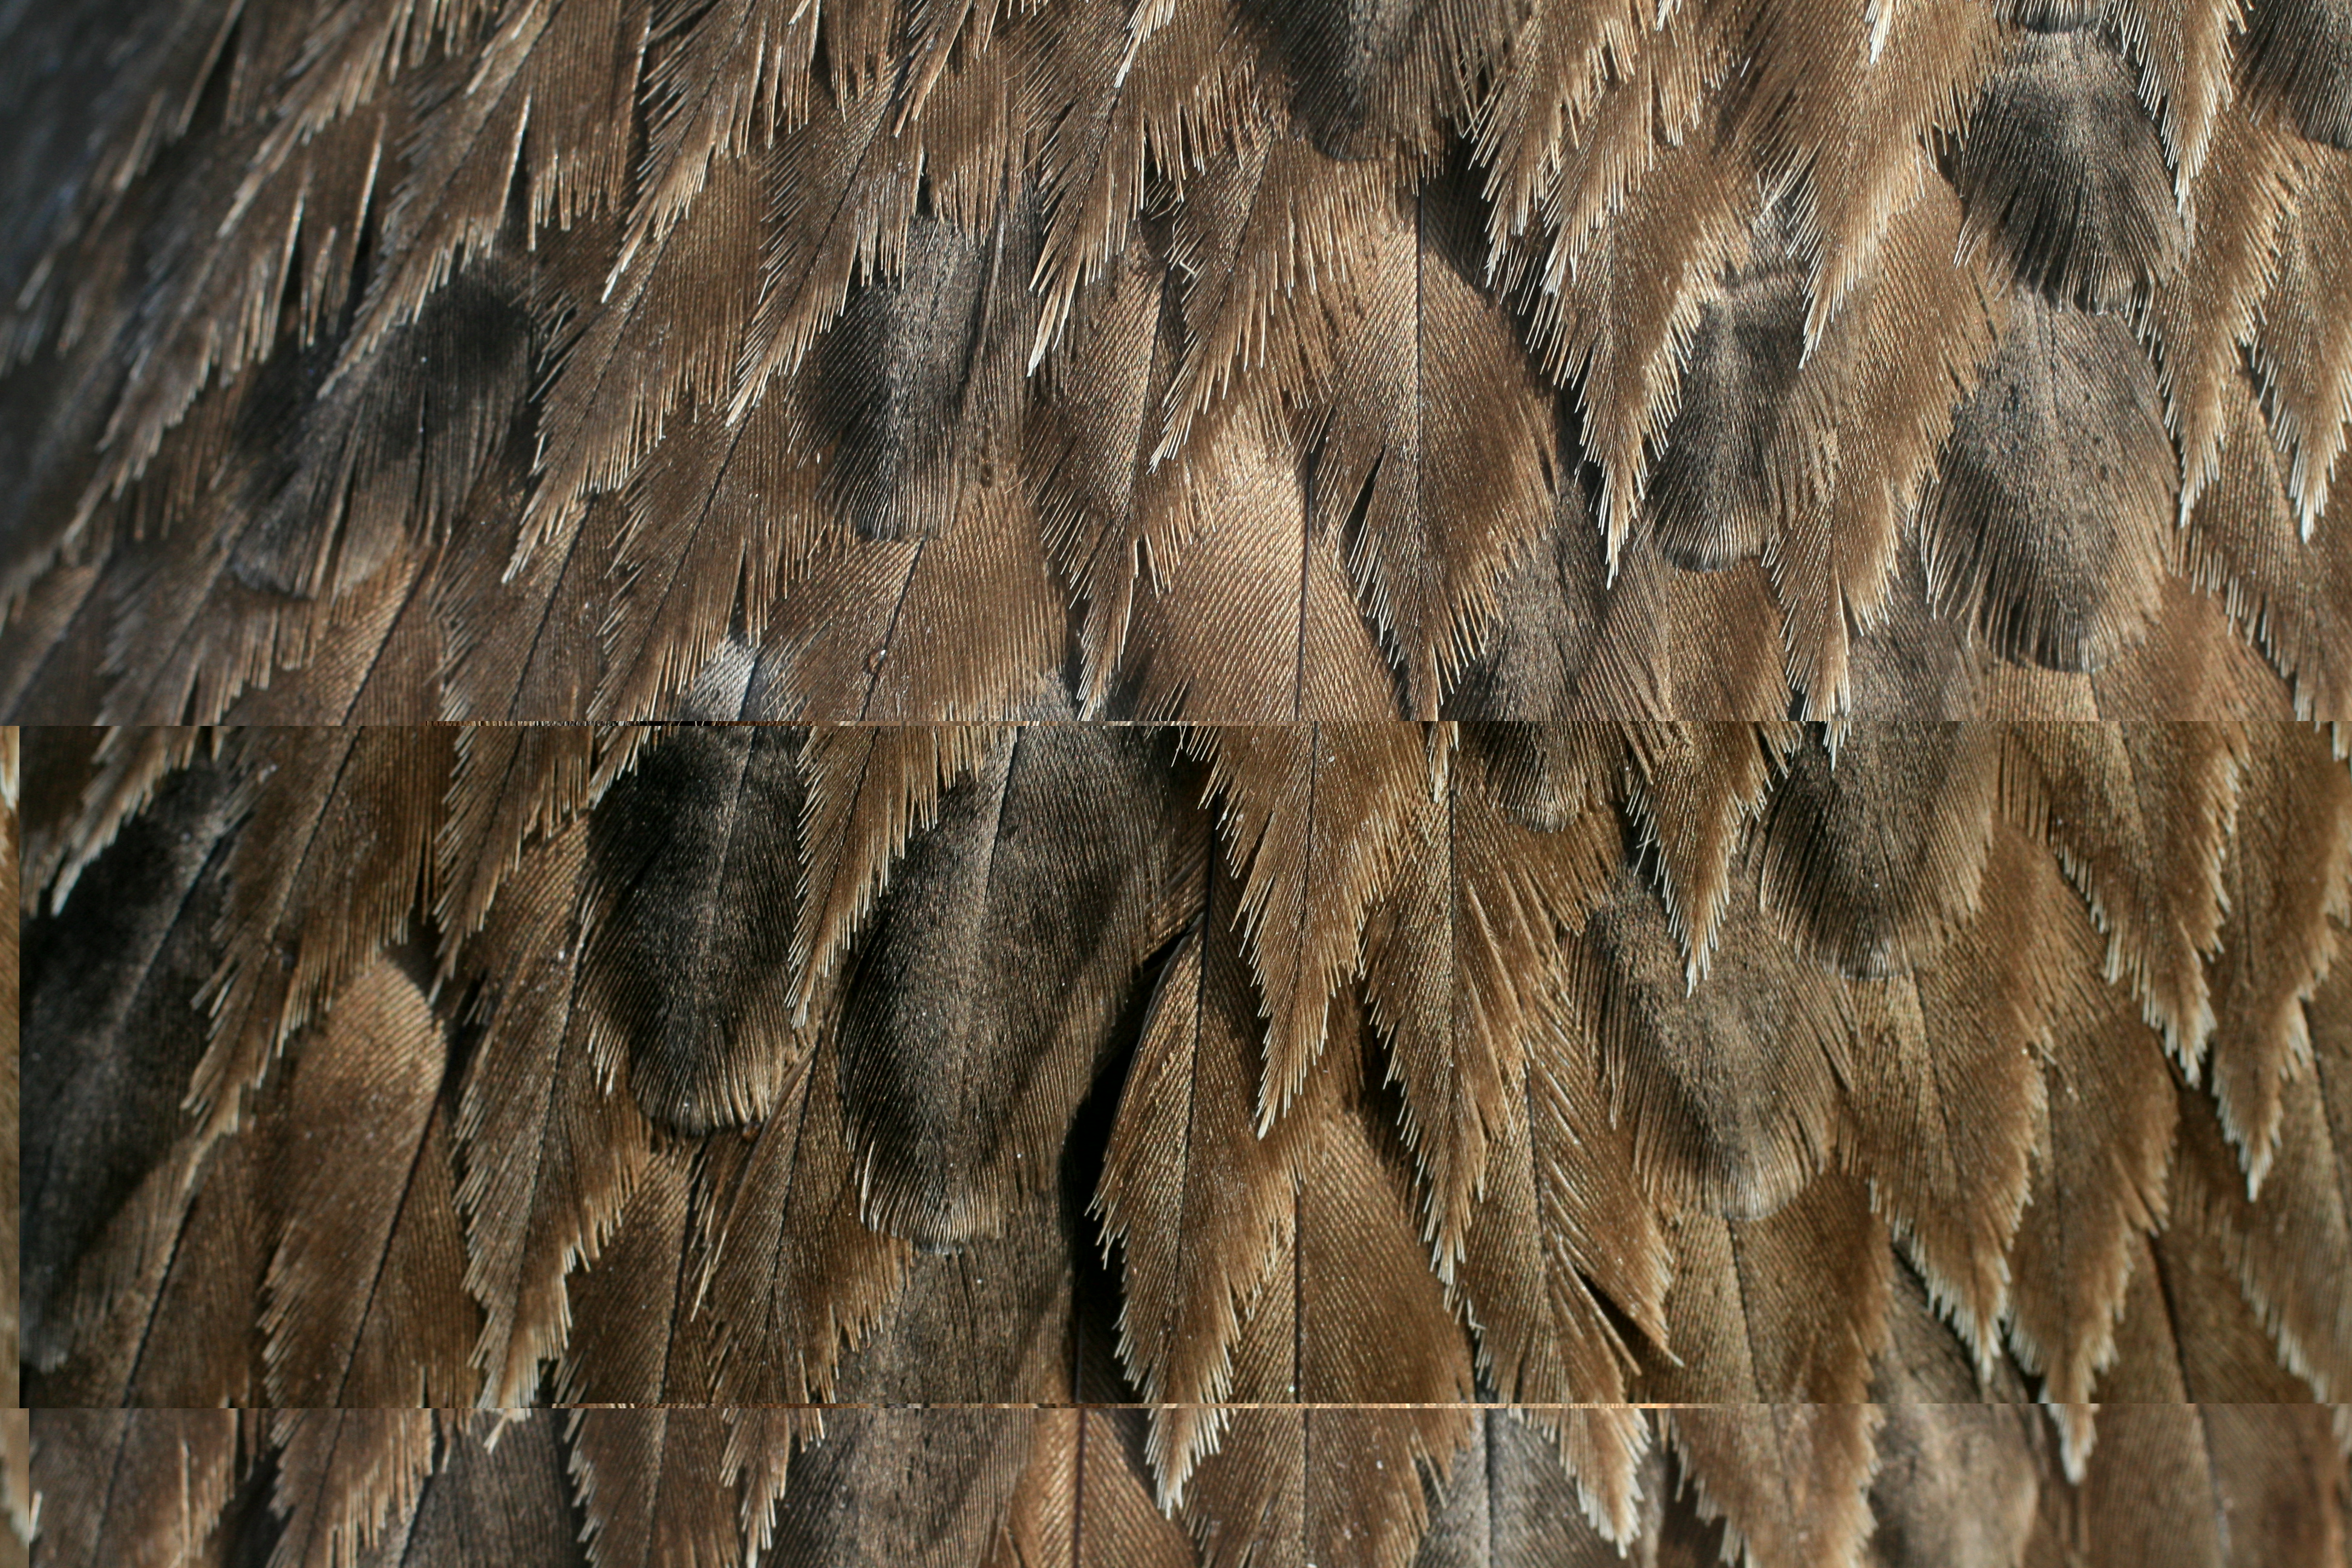 File:Brown pelican feather closeup.jpg - Wikimedia Commons